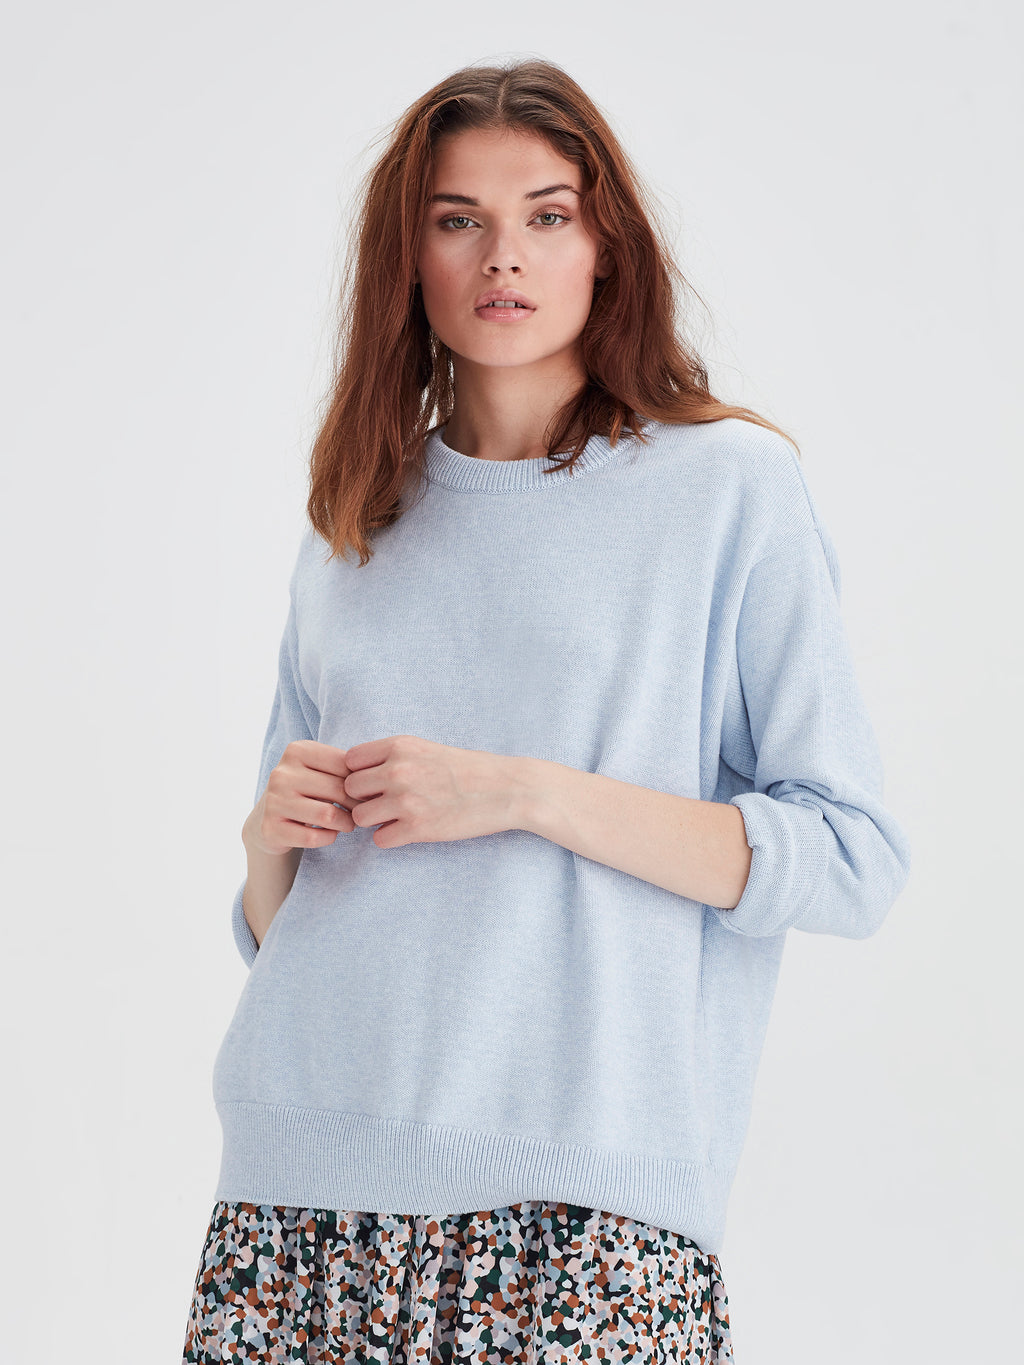 Cotton Sweatshirt (Cotton Knit) Baby Blue